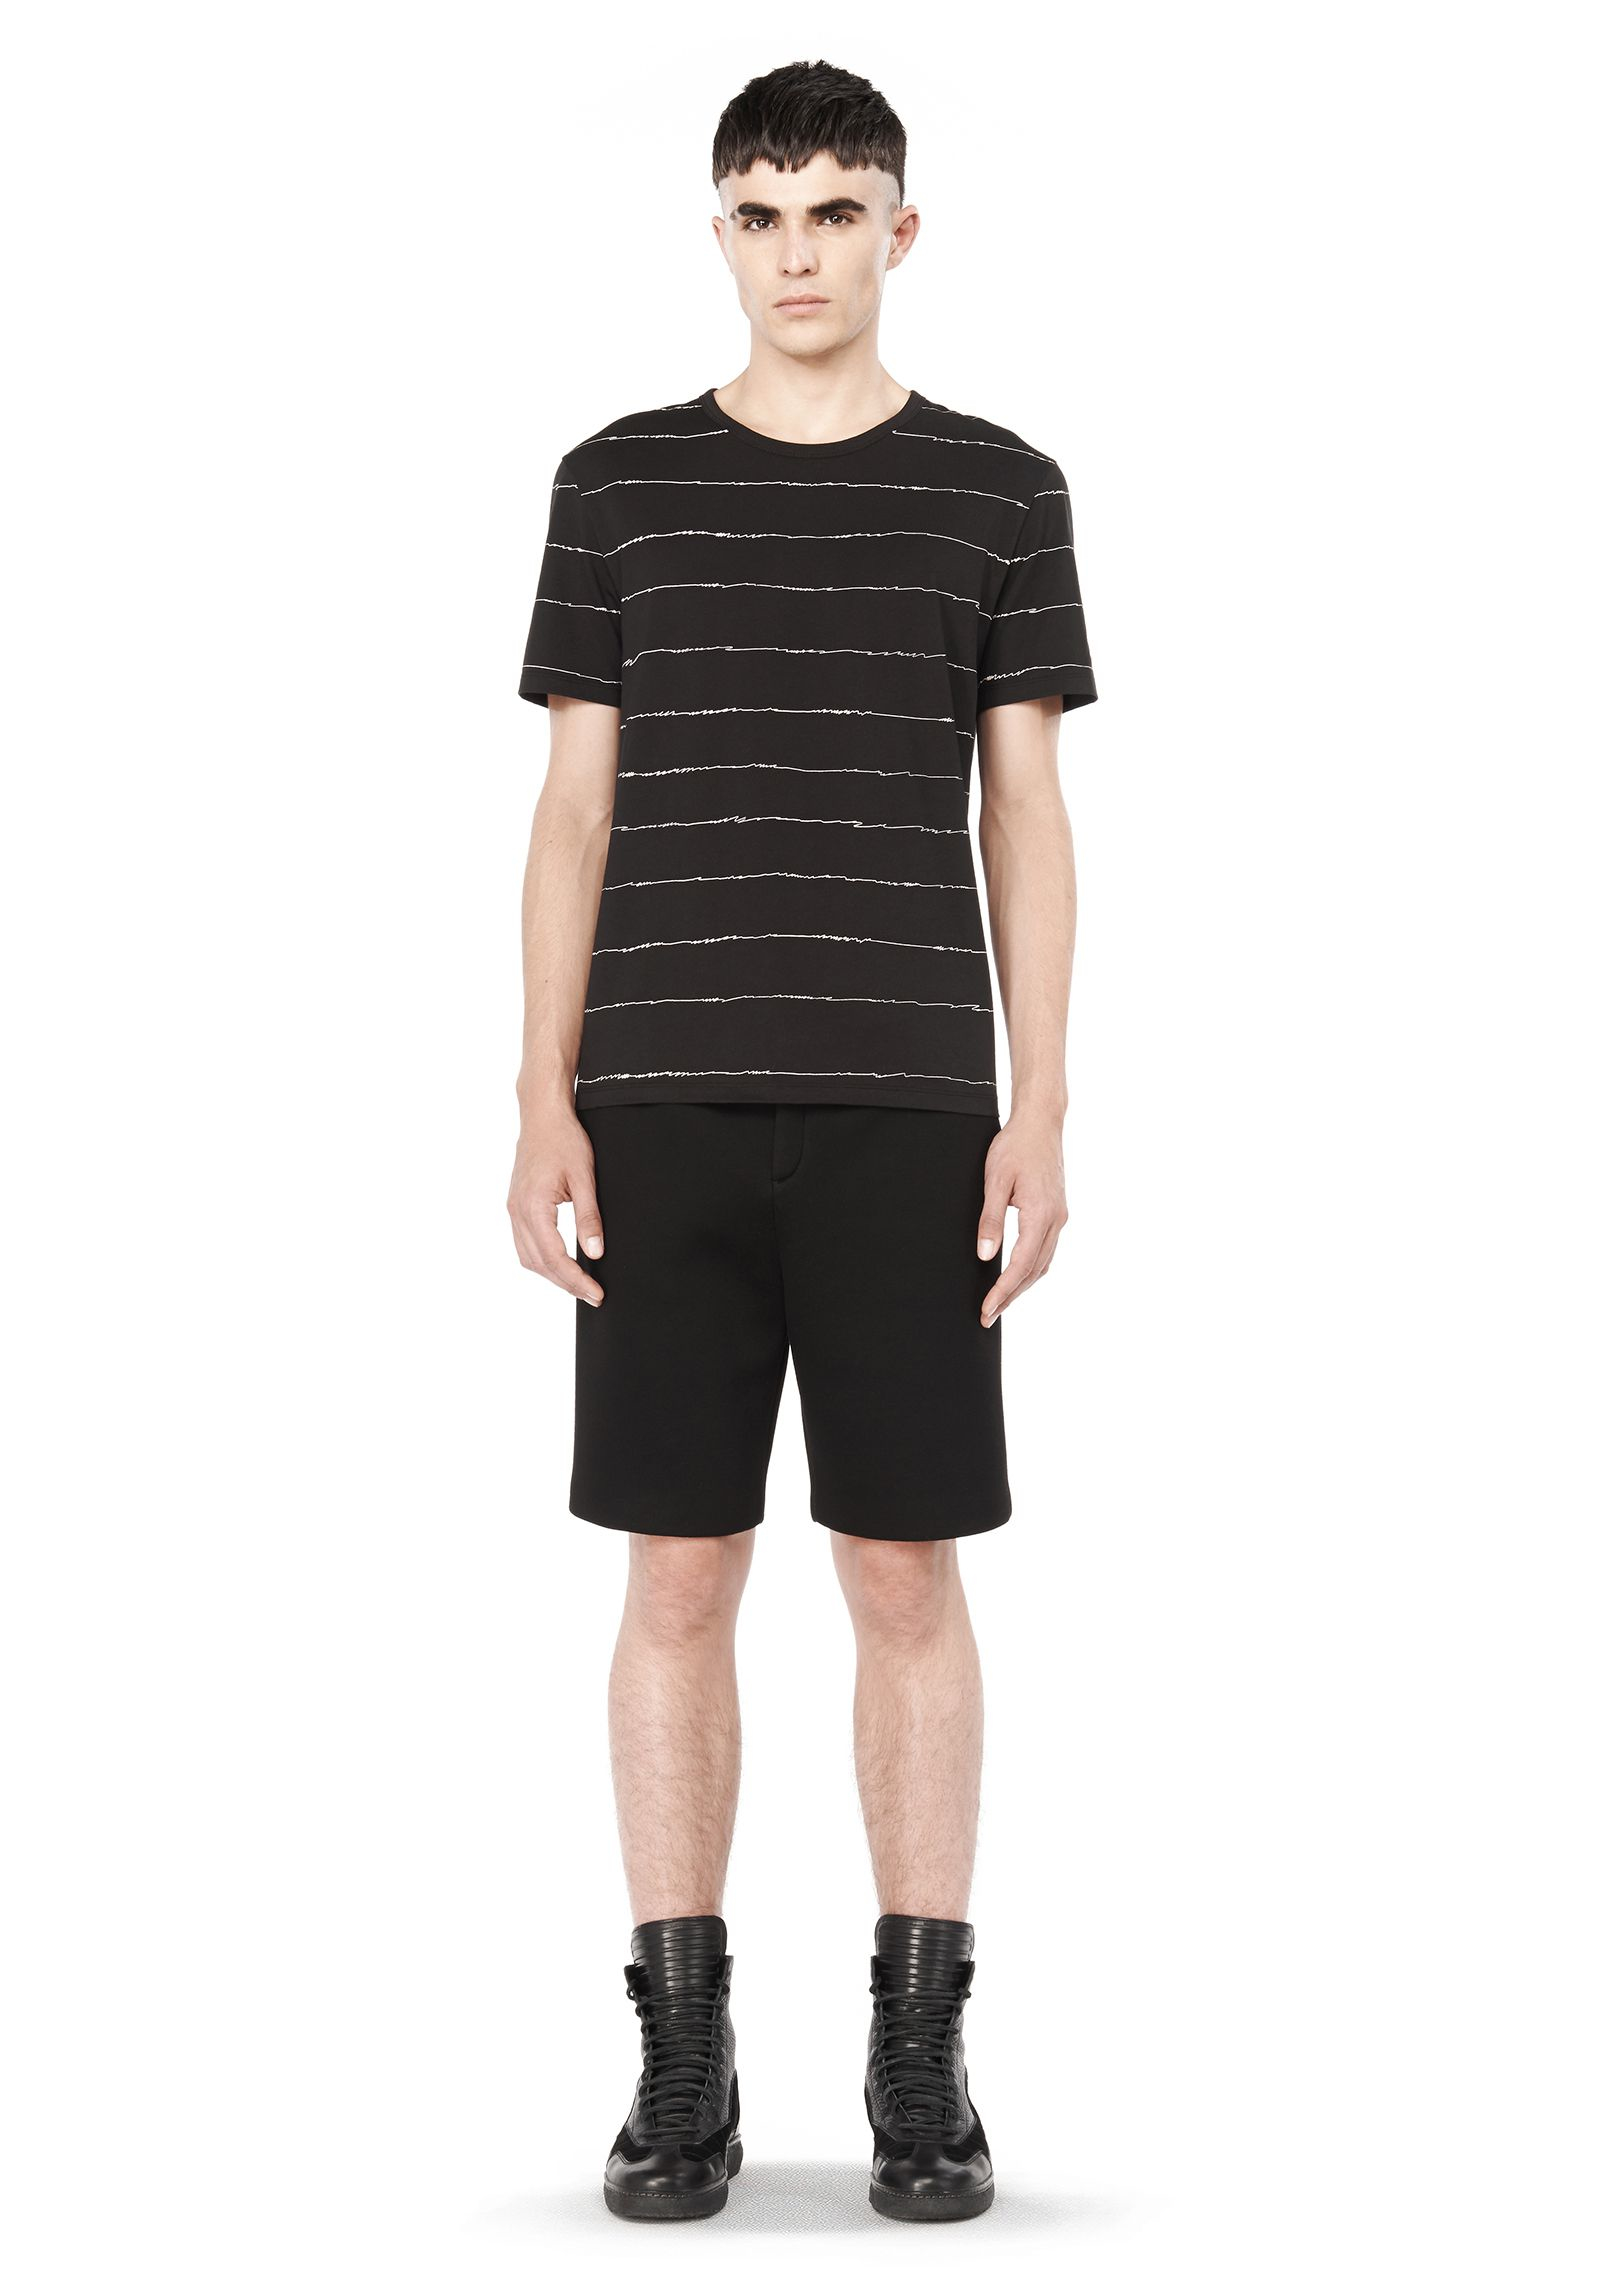 T by alexander wang printed scribble tee shirt in black for Alexander wang t shirts